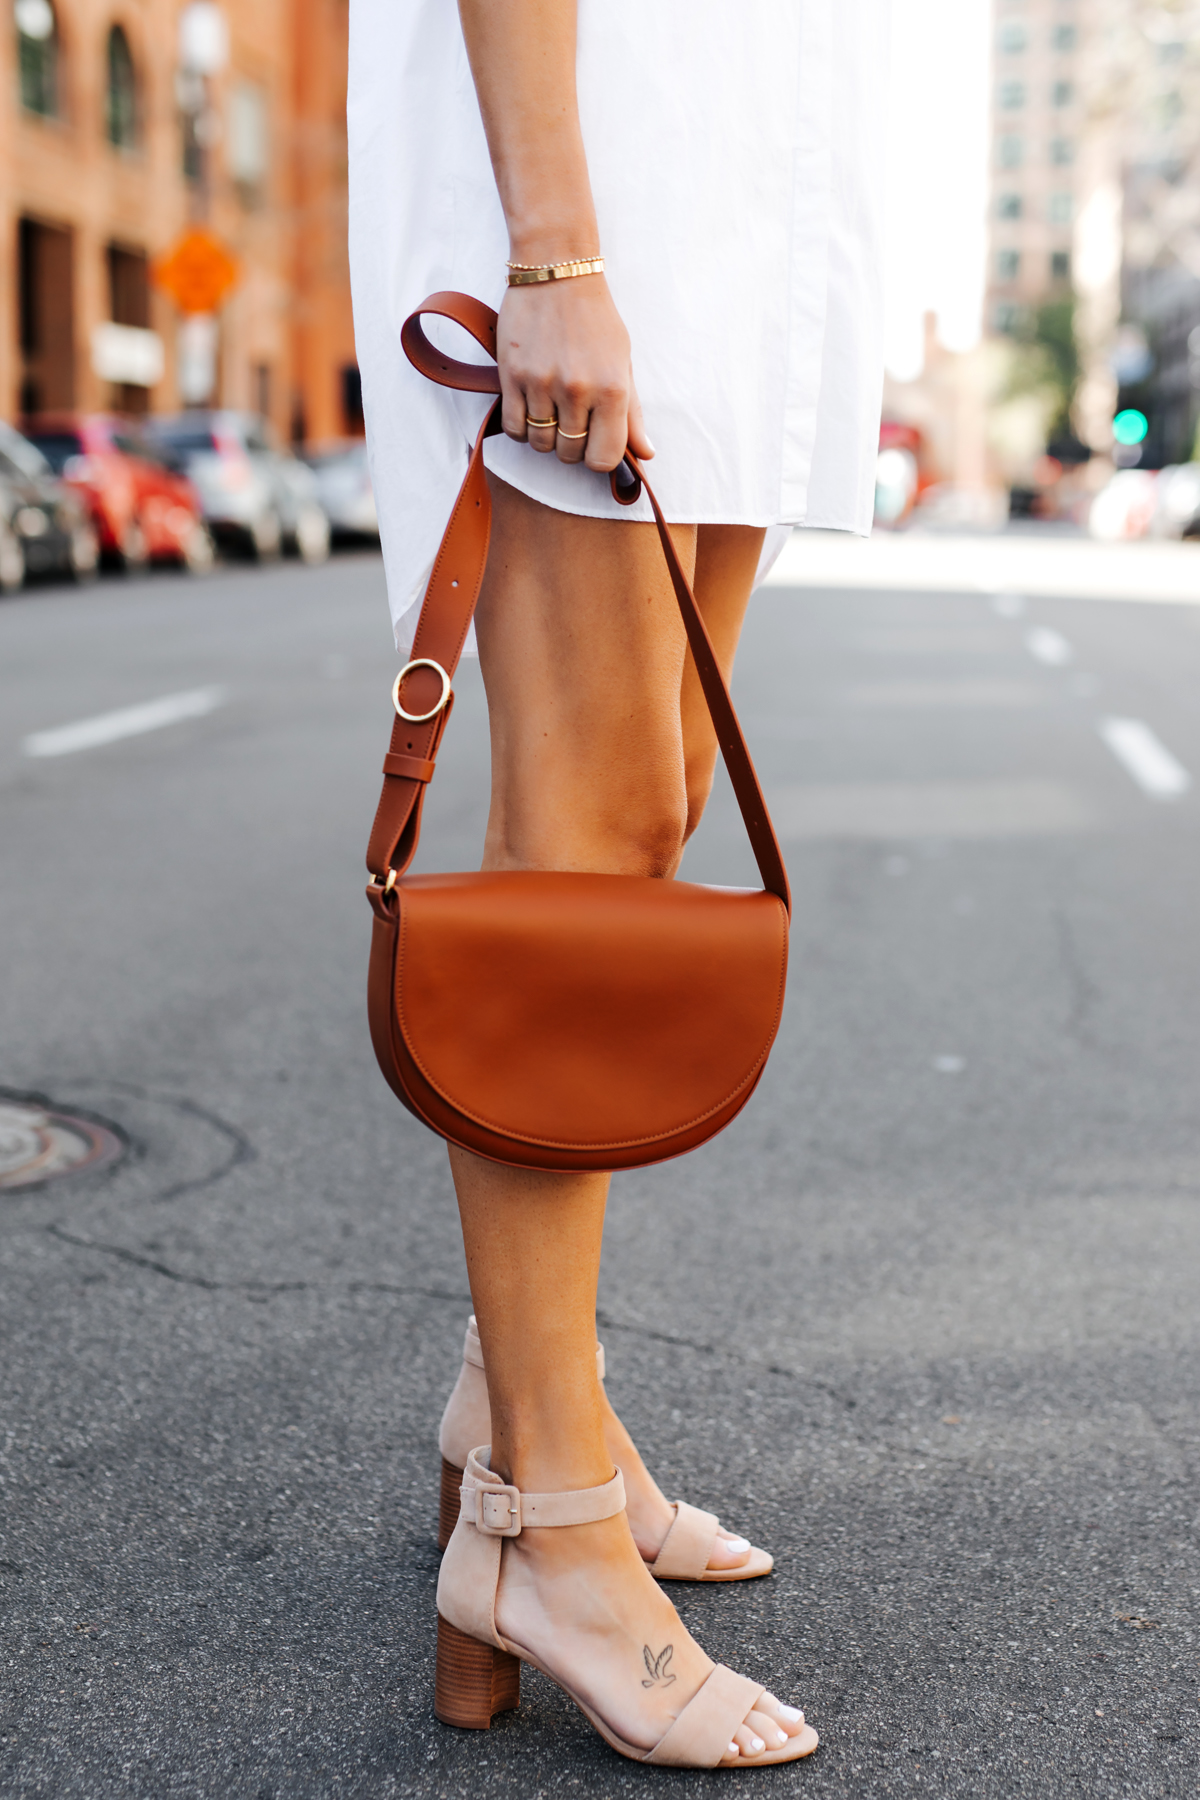 Woman Wearing White Shirtdress Tan Sandals Cuyana Half Moon Bag Caramel Fashion Jackson San Diego Fashion Blogger Street Style